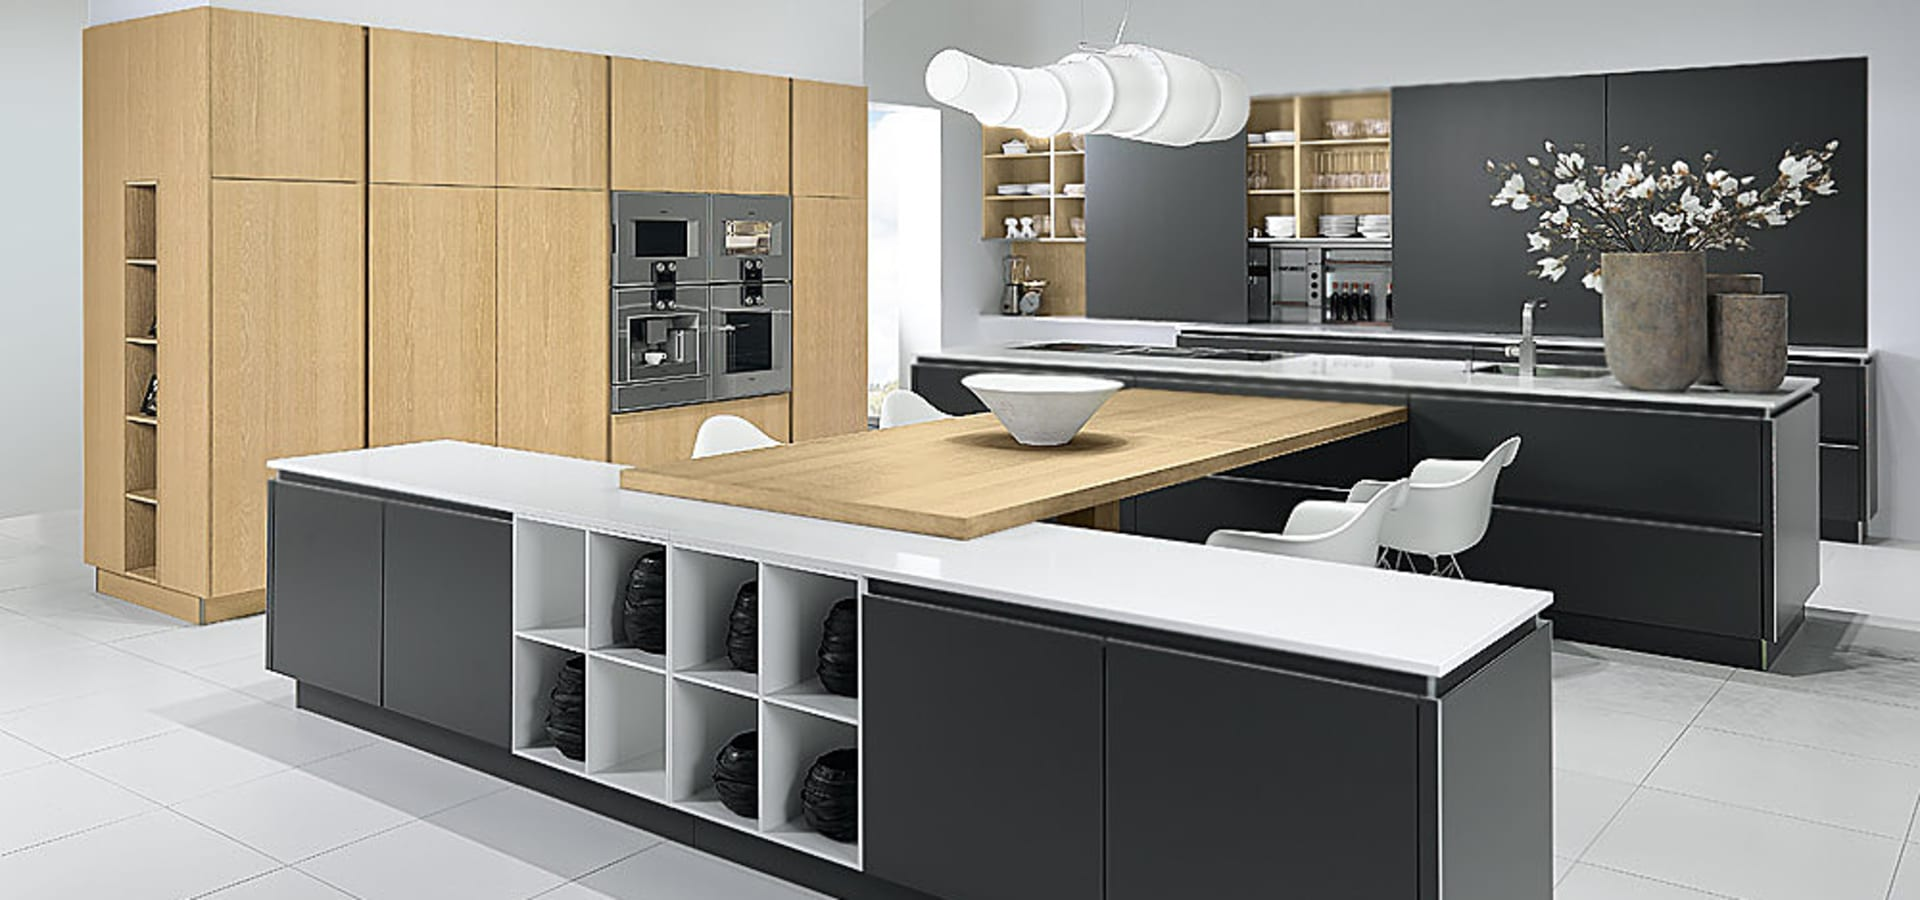 Camerette Da Sogno Von Room 66 Kitchen More Homify